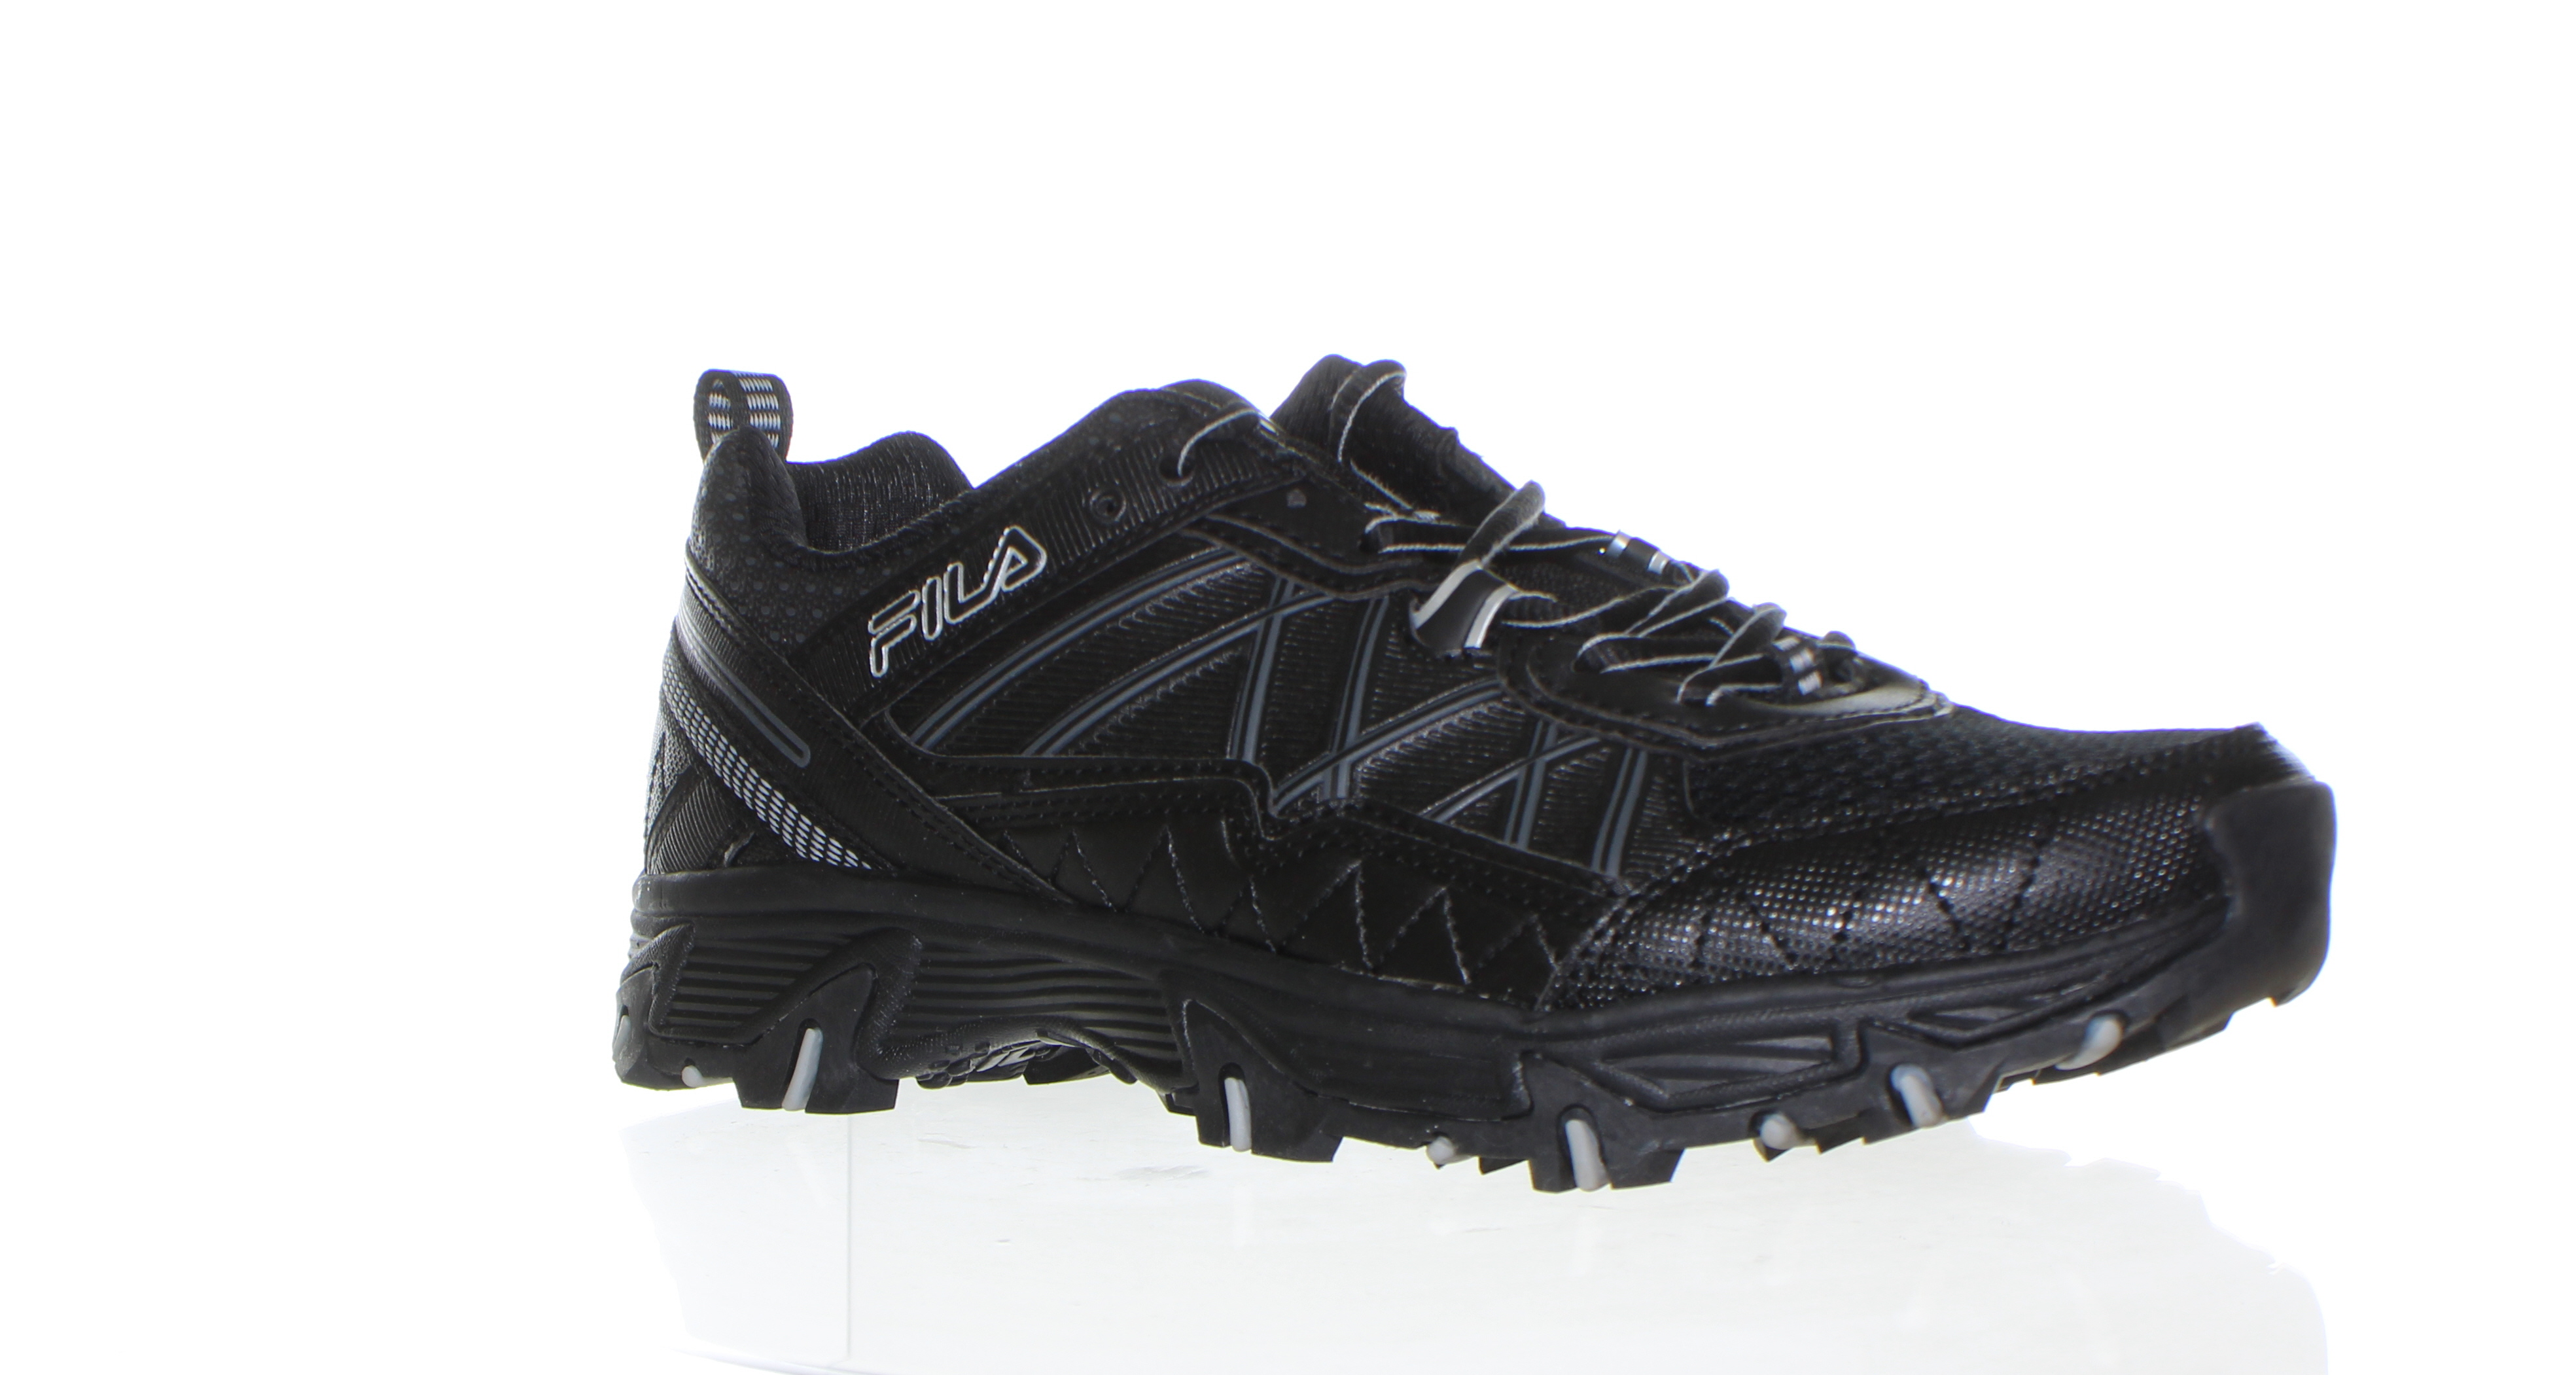 Details about Fila Womens Peake Black Hiking Shoes Size 9.5 (C,D,W) (758996)